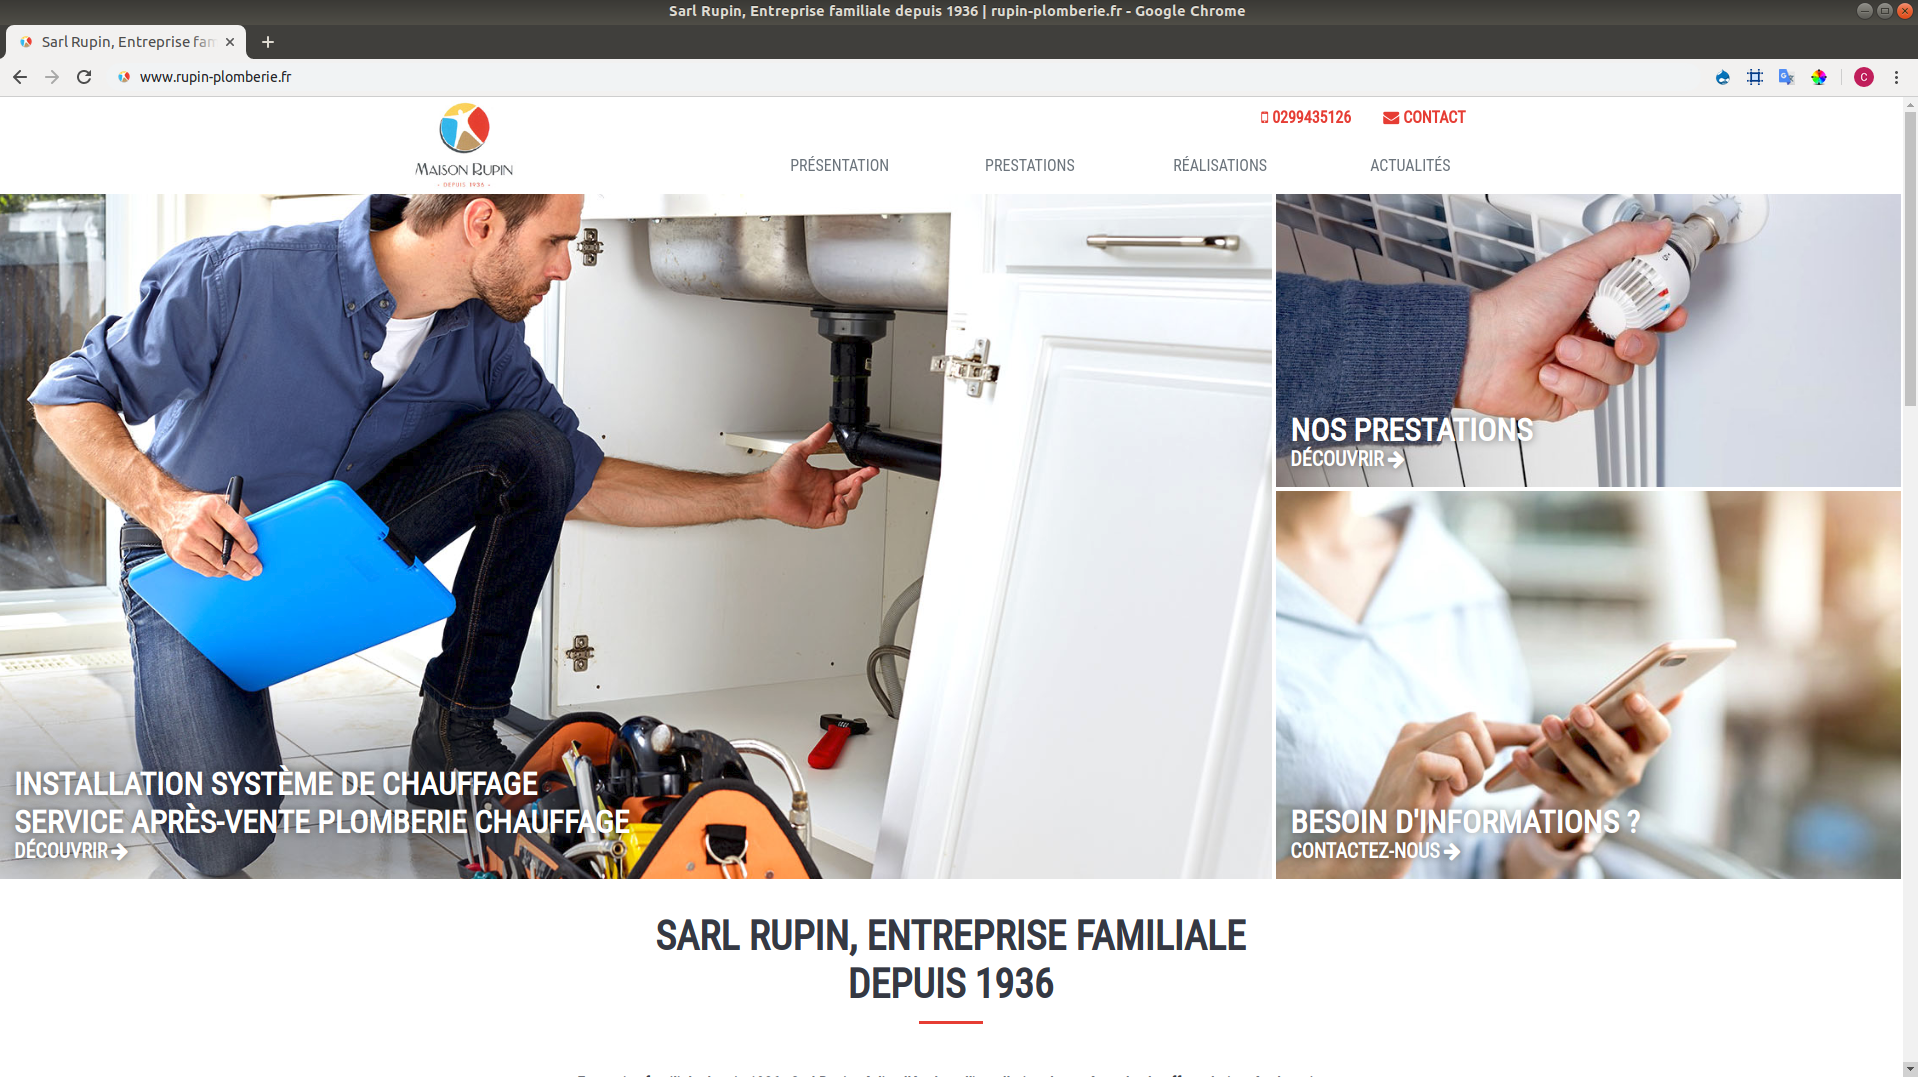 https://www.rupin-plomberie.fr/sites/rupin-plomberie.fr/files/news/photos/capture_du_2019-07-18_12-02-21.png